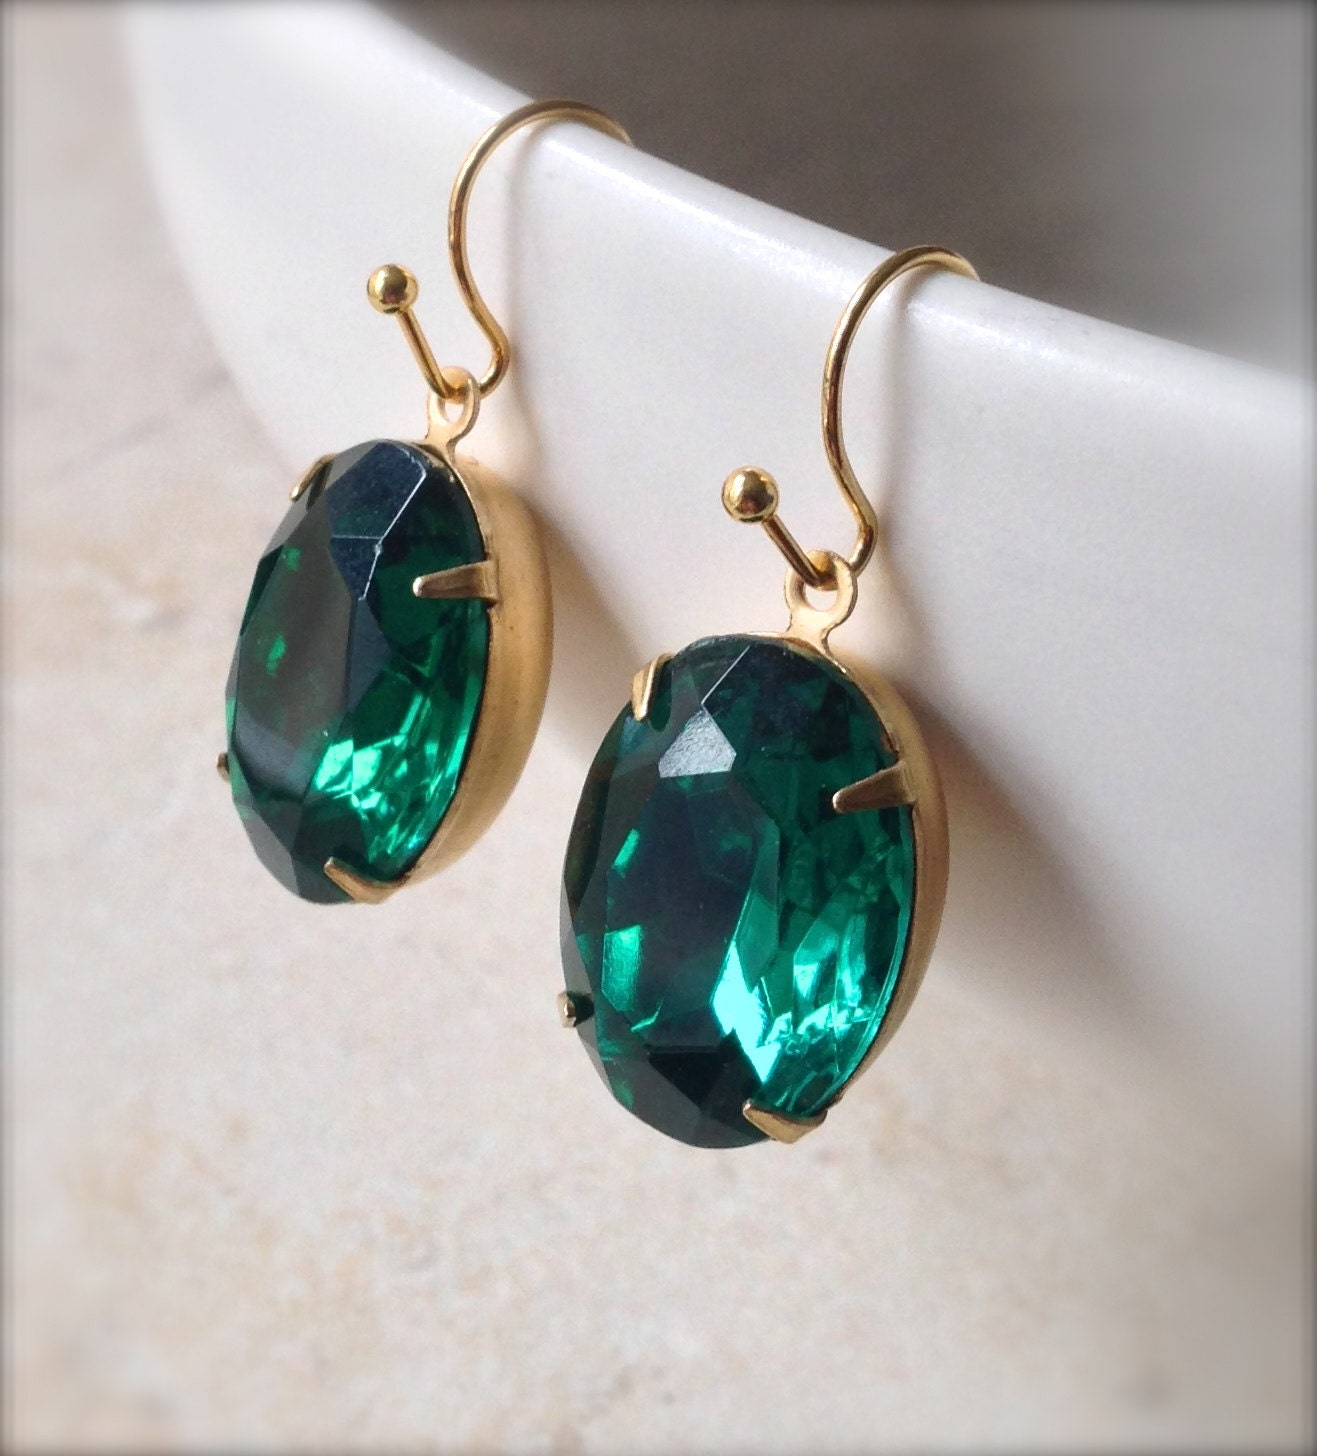 Emerald Green Rhinestone Earrings Gold Filled Oval Vintage Style 18 x 13mm Gifts Under 20 for Her - GoldSunDesigns